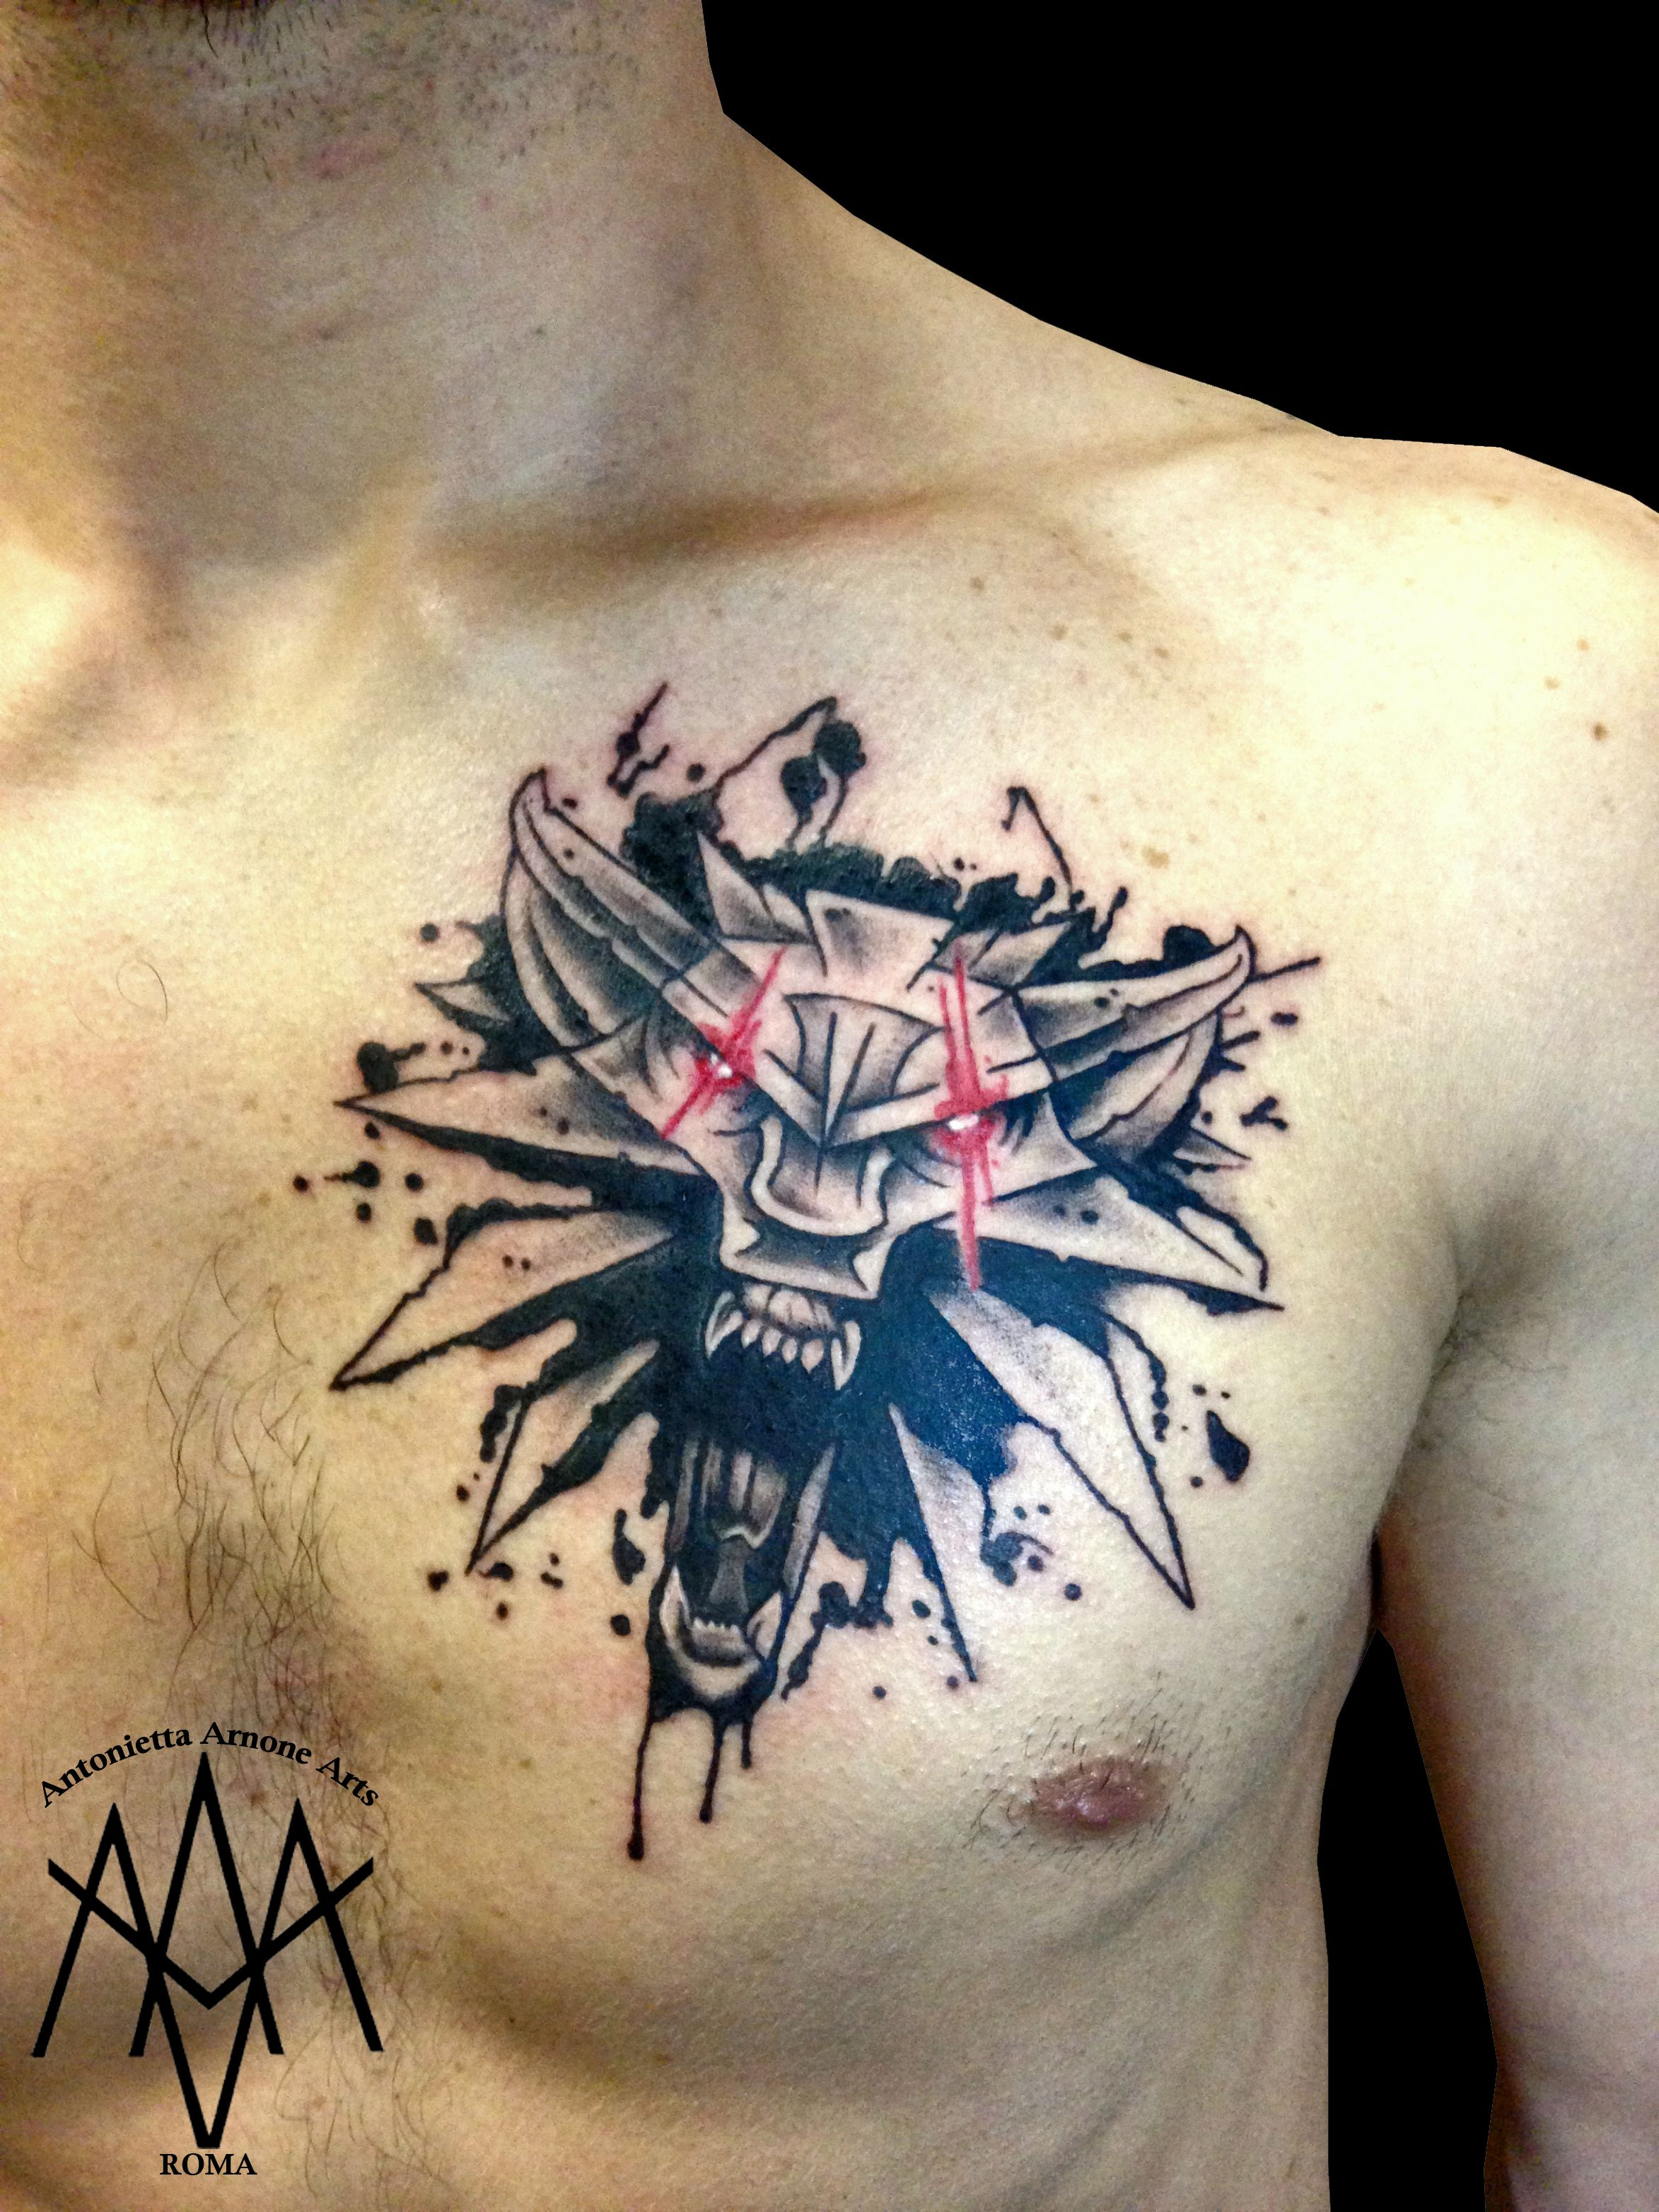 Witcher 3 Tattoo: Witcher Tattoo, Gaming Tattoo, Gamer Tattoos